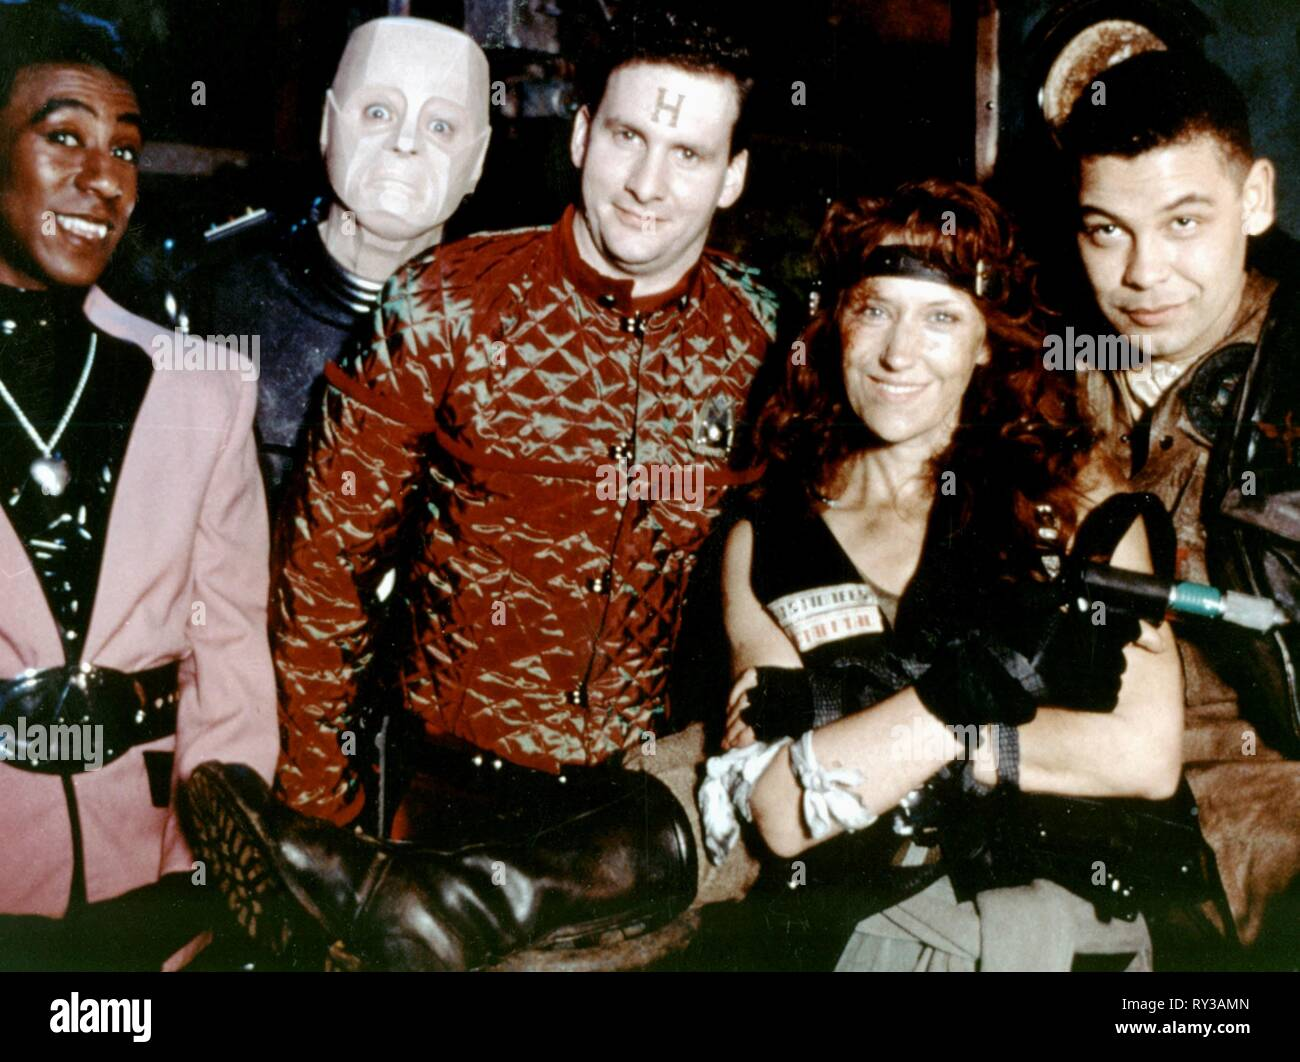 JULES,LLEWELLYN,BARRIE,DOBSON,CHARLES, RED DWARF, 1988 - Stock Image